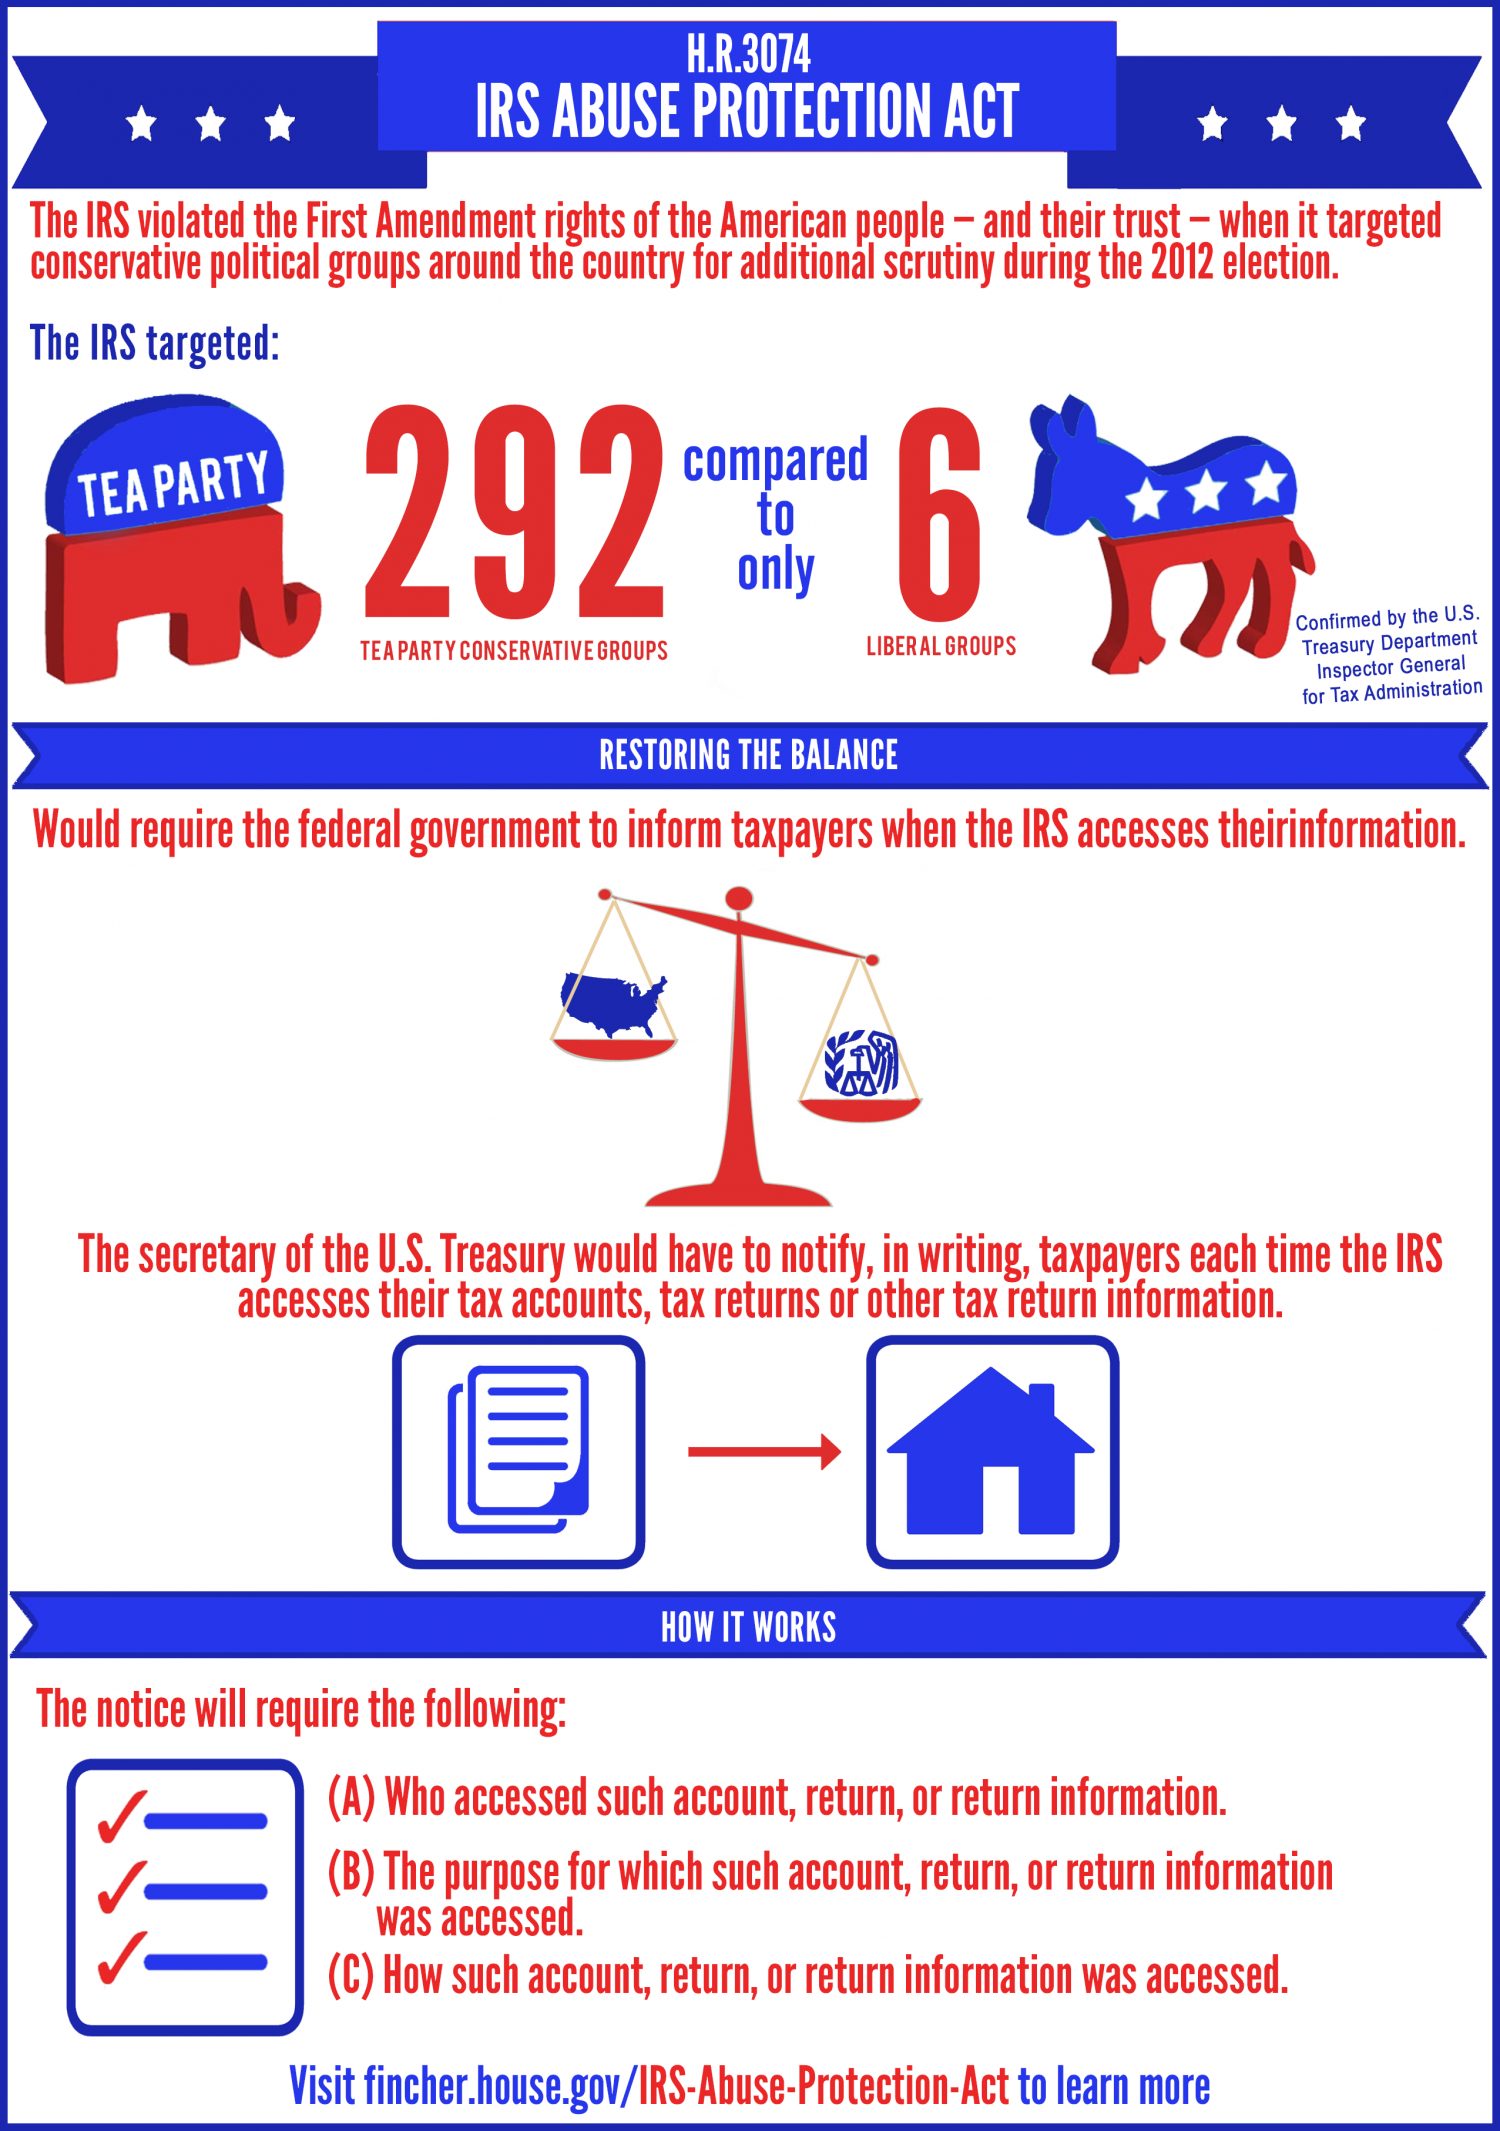 The IRS Abuse Protection Act Infographic